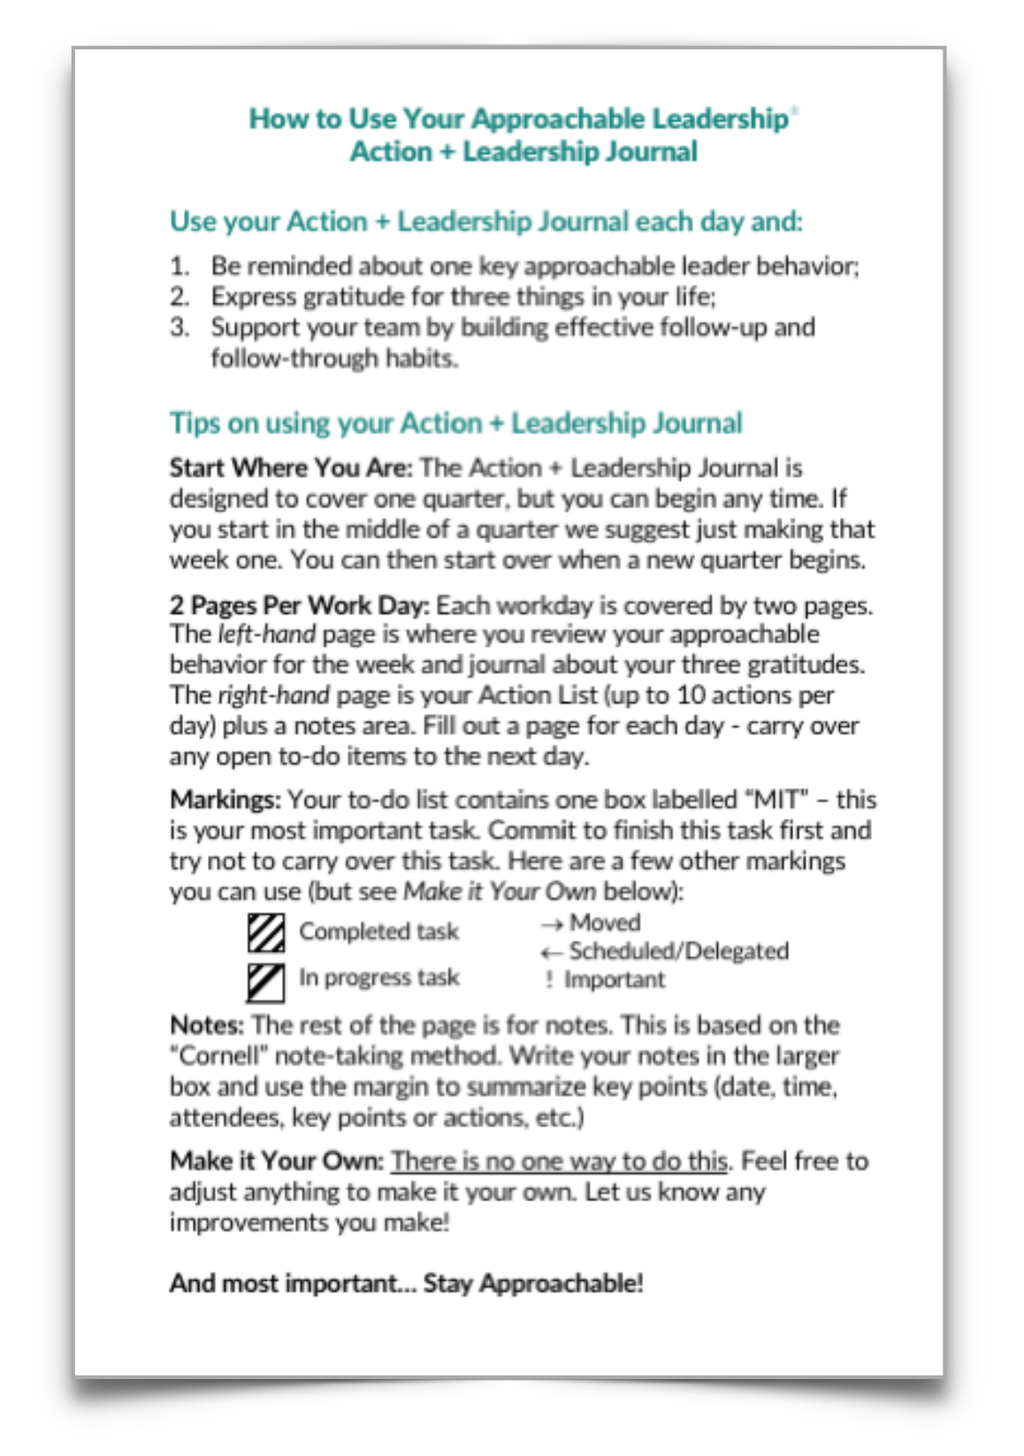 3 questions action leadership journals pay as you go license 3 questions action leadership journals pay as you go license approachable leadership